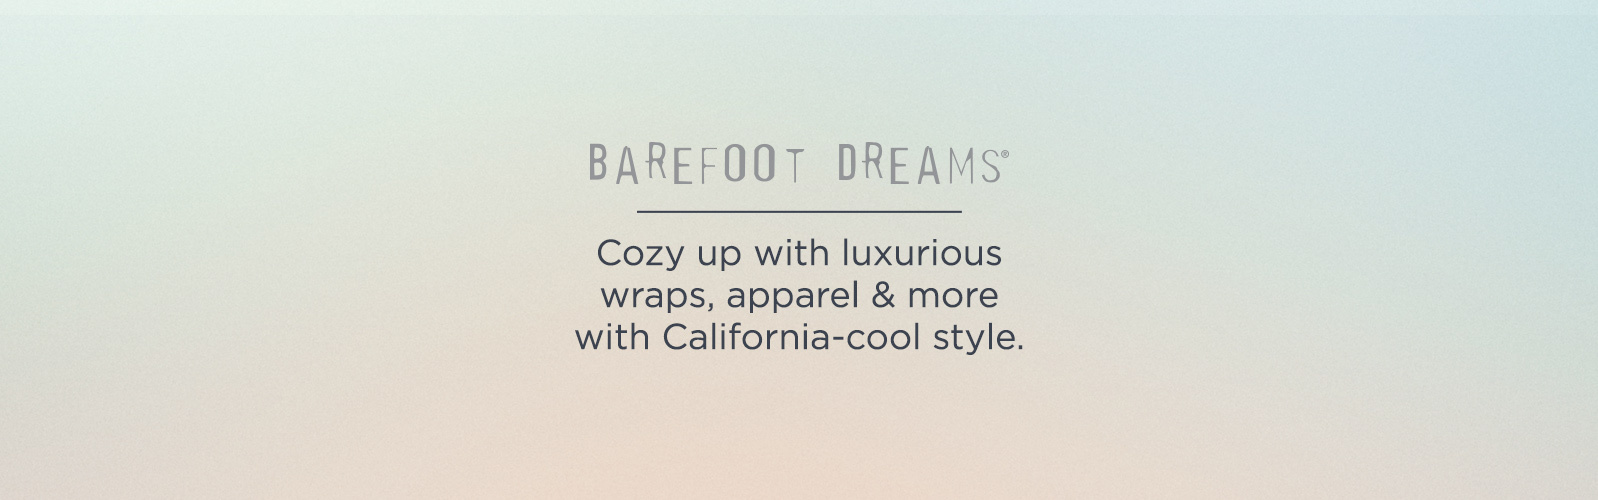 Barefoot Dreams — Cozy up with luxurious wraps, apparel & more with California-cool style